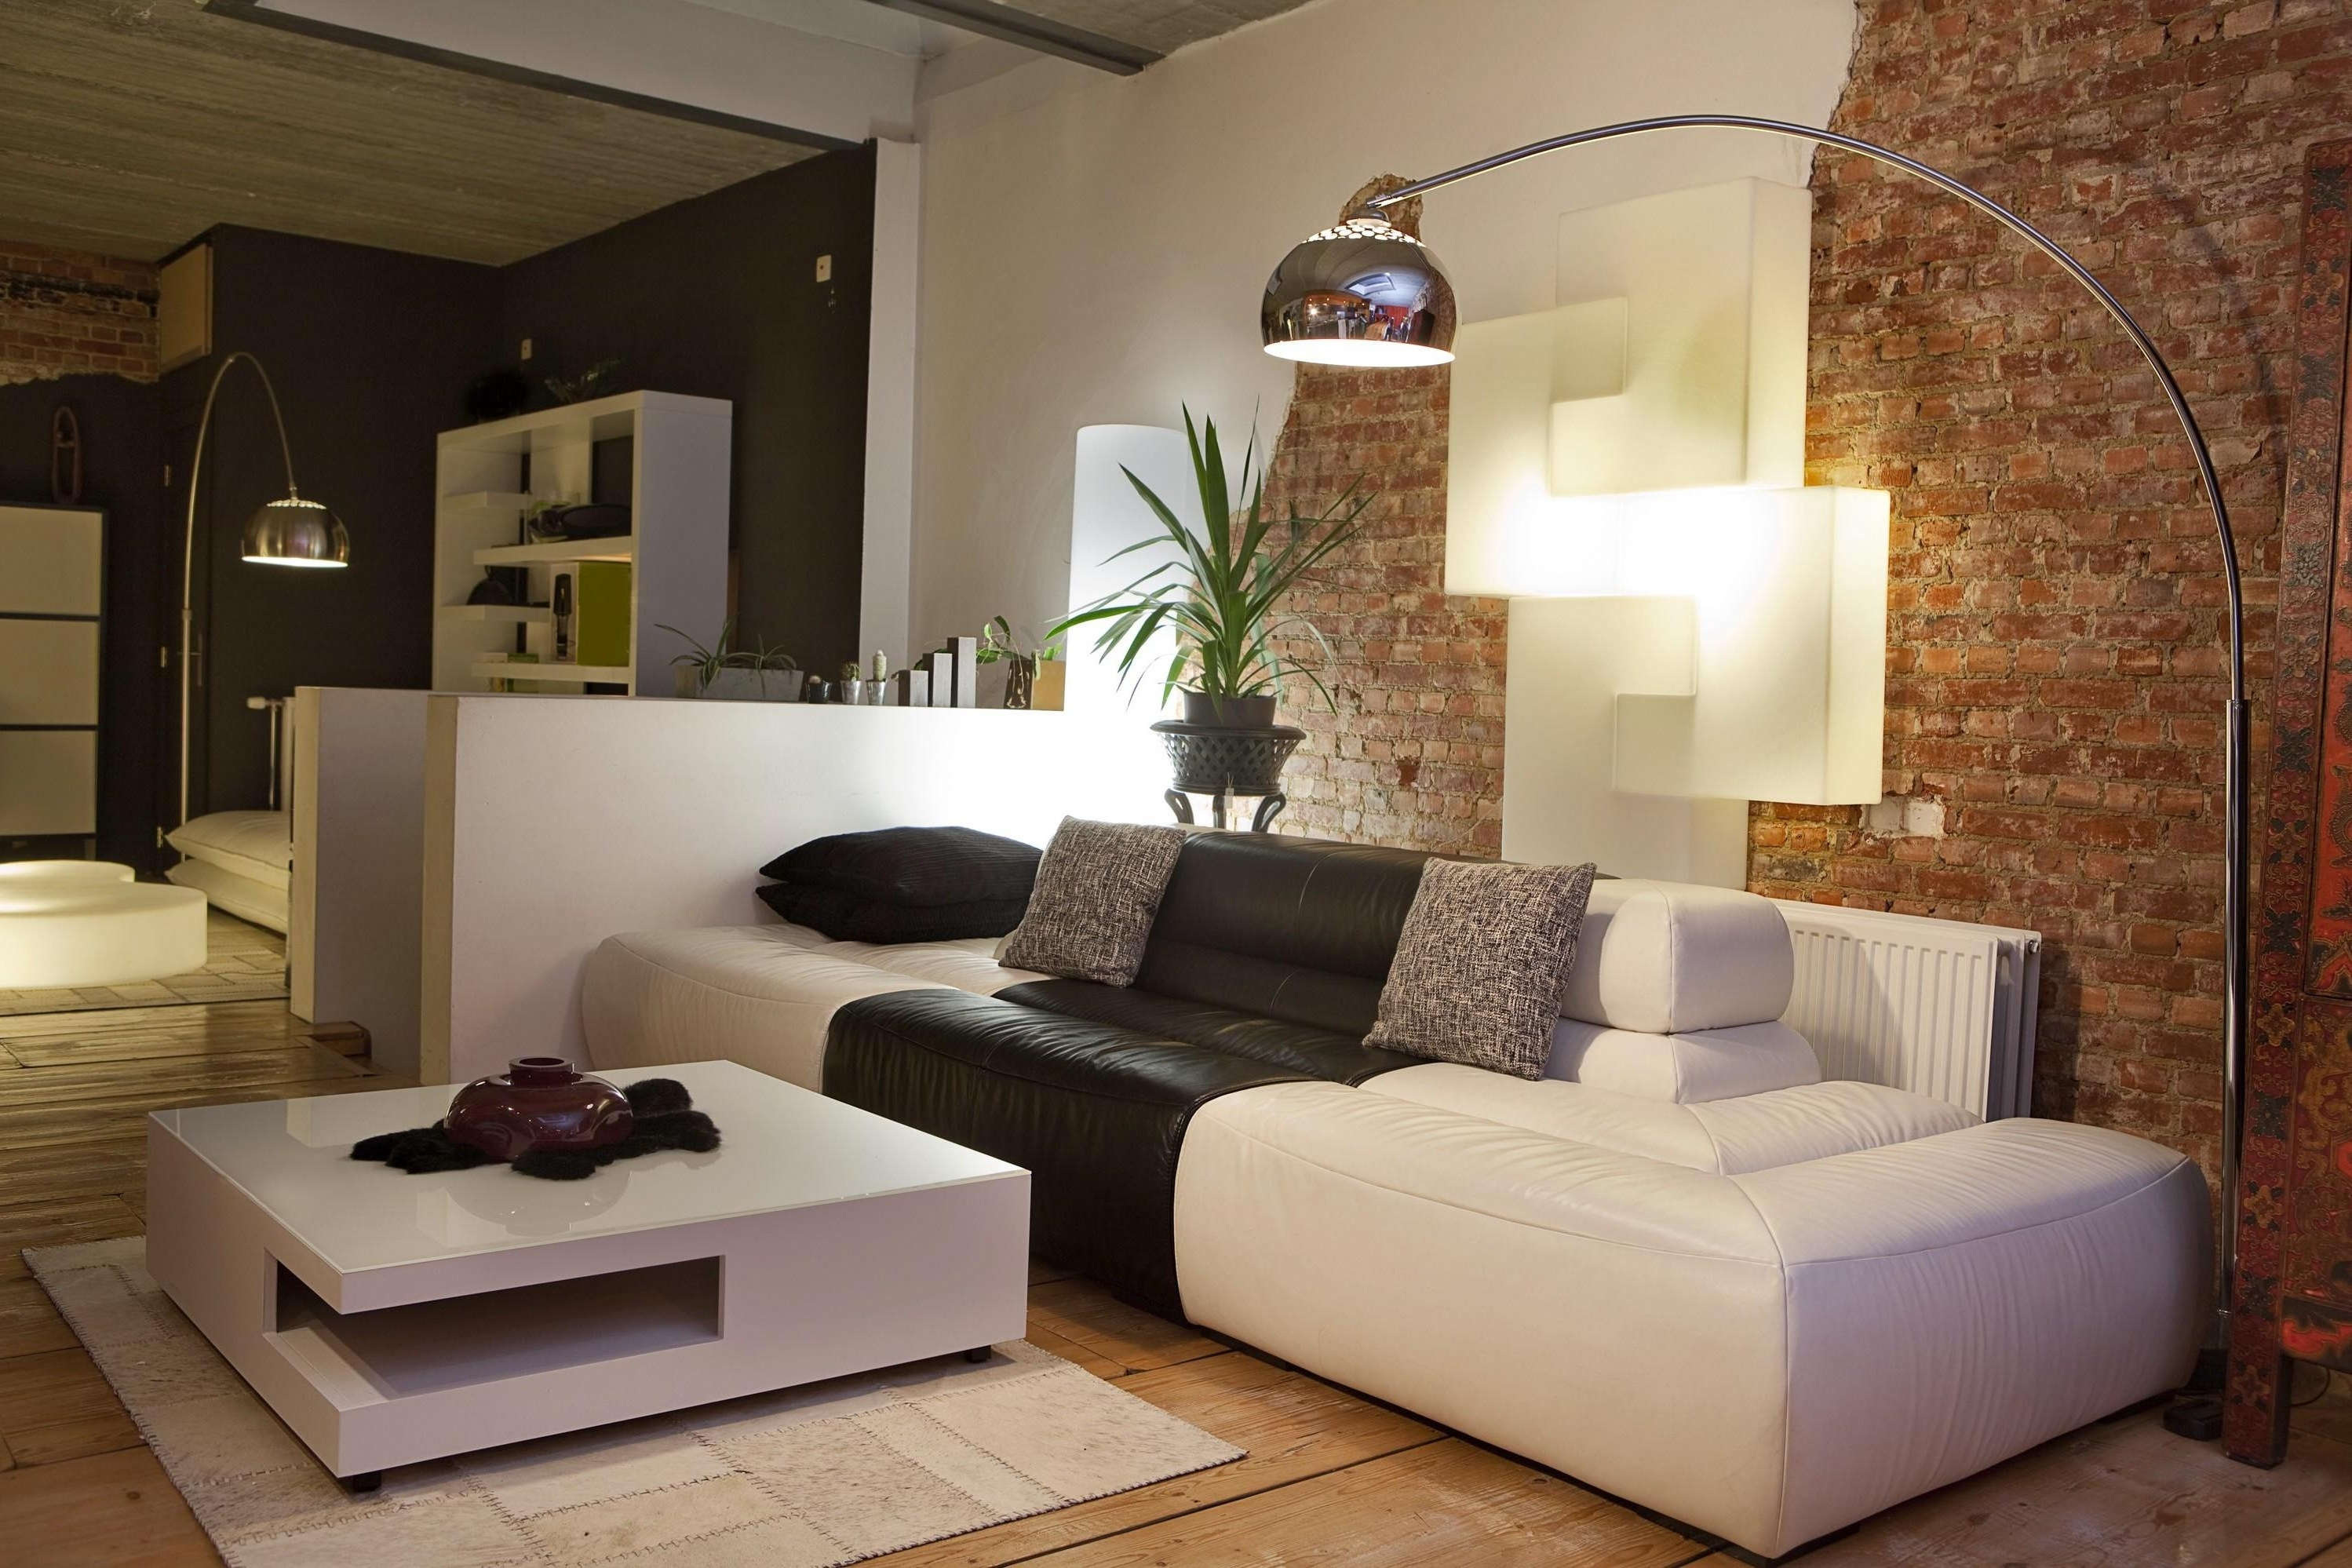 Widely Used Black Living Room Table Lamps Regarding How To Decorate Your Living Room With Table And Floor Lamp Lamps (View 15 of 15)